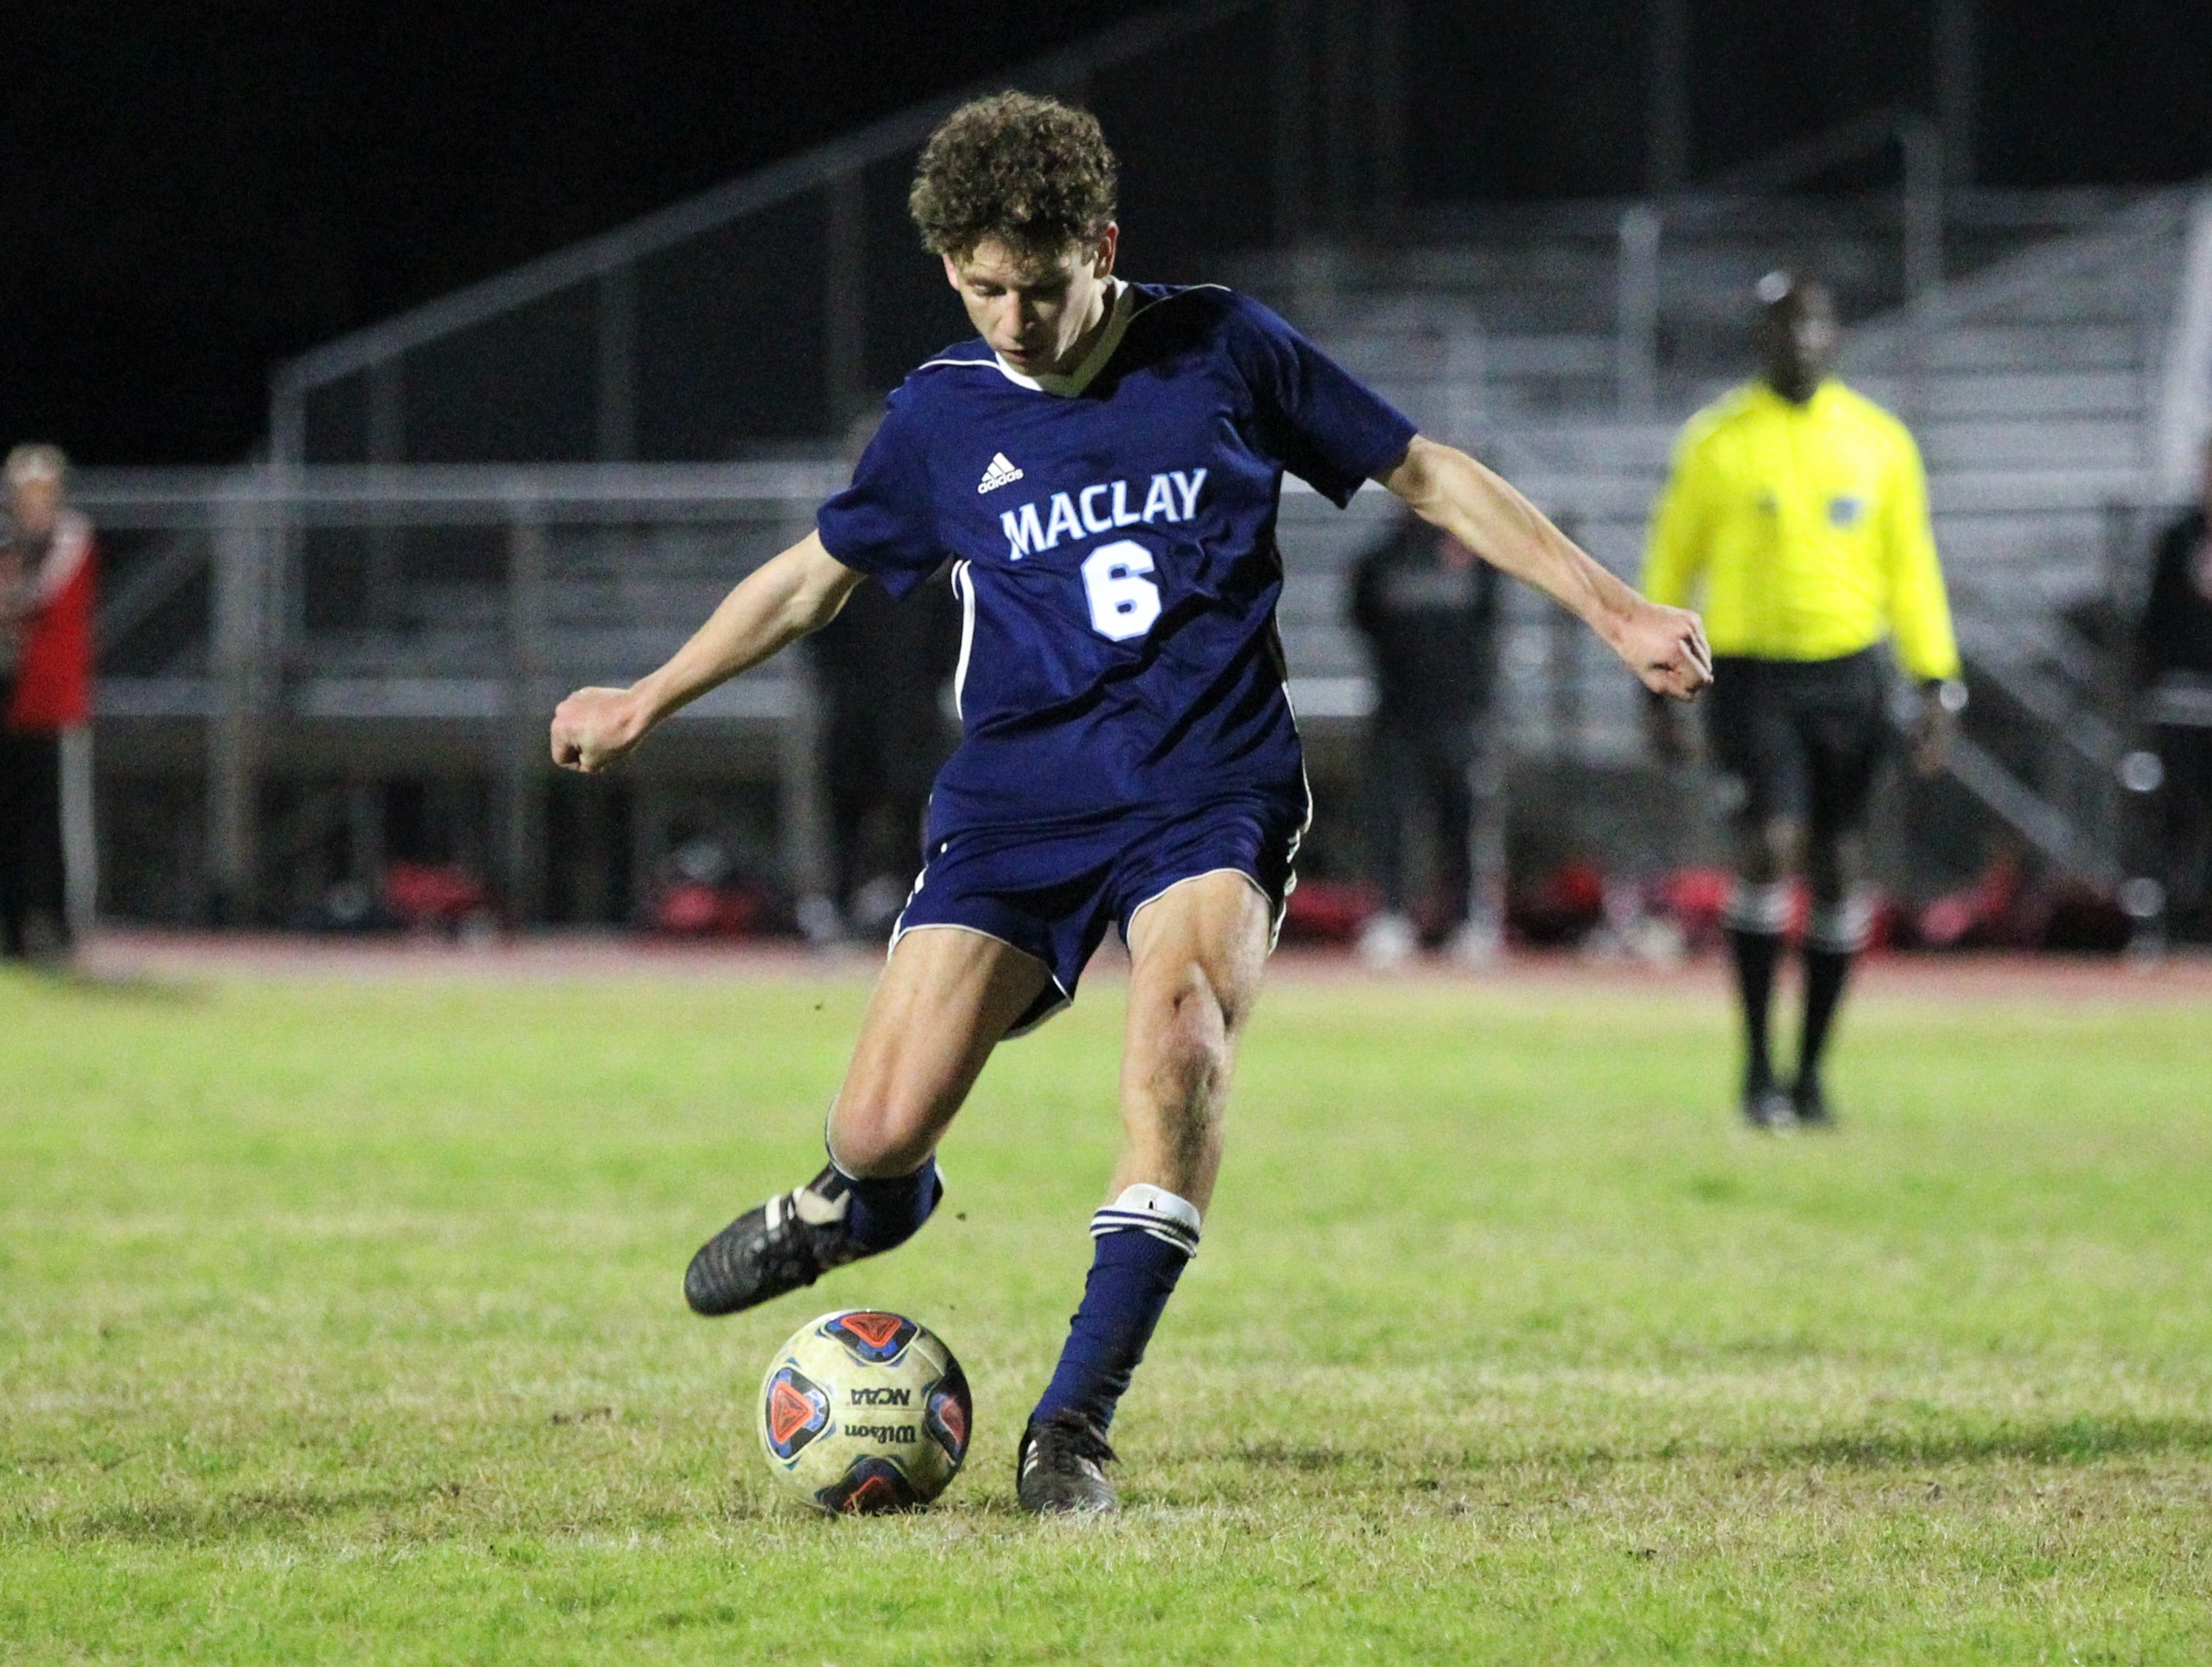 Maclay's Andrew Daunt takes a free kick that hits the post as Leon's boys soccer team beat Maclay 3-1 on Jan. 22, 2019.